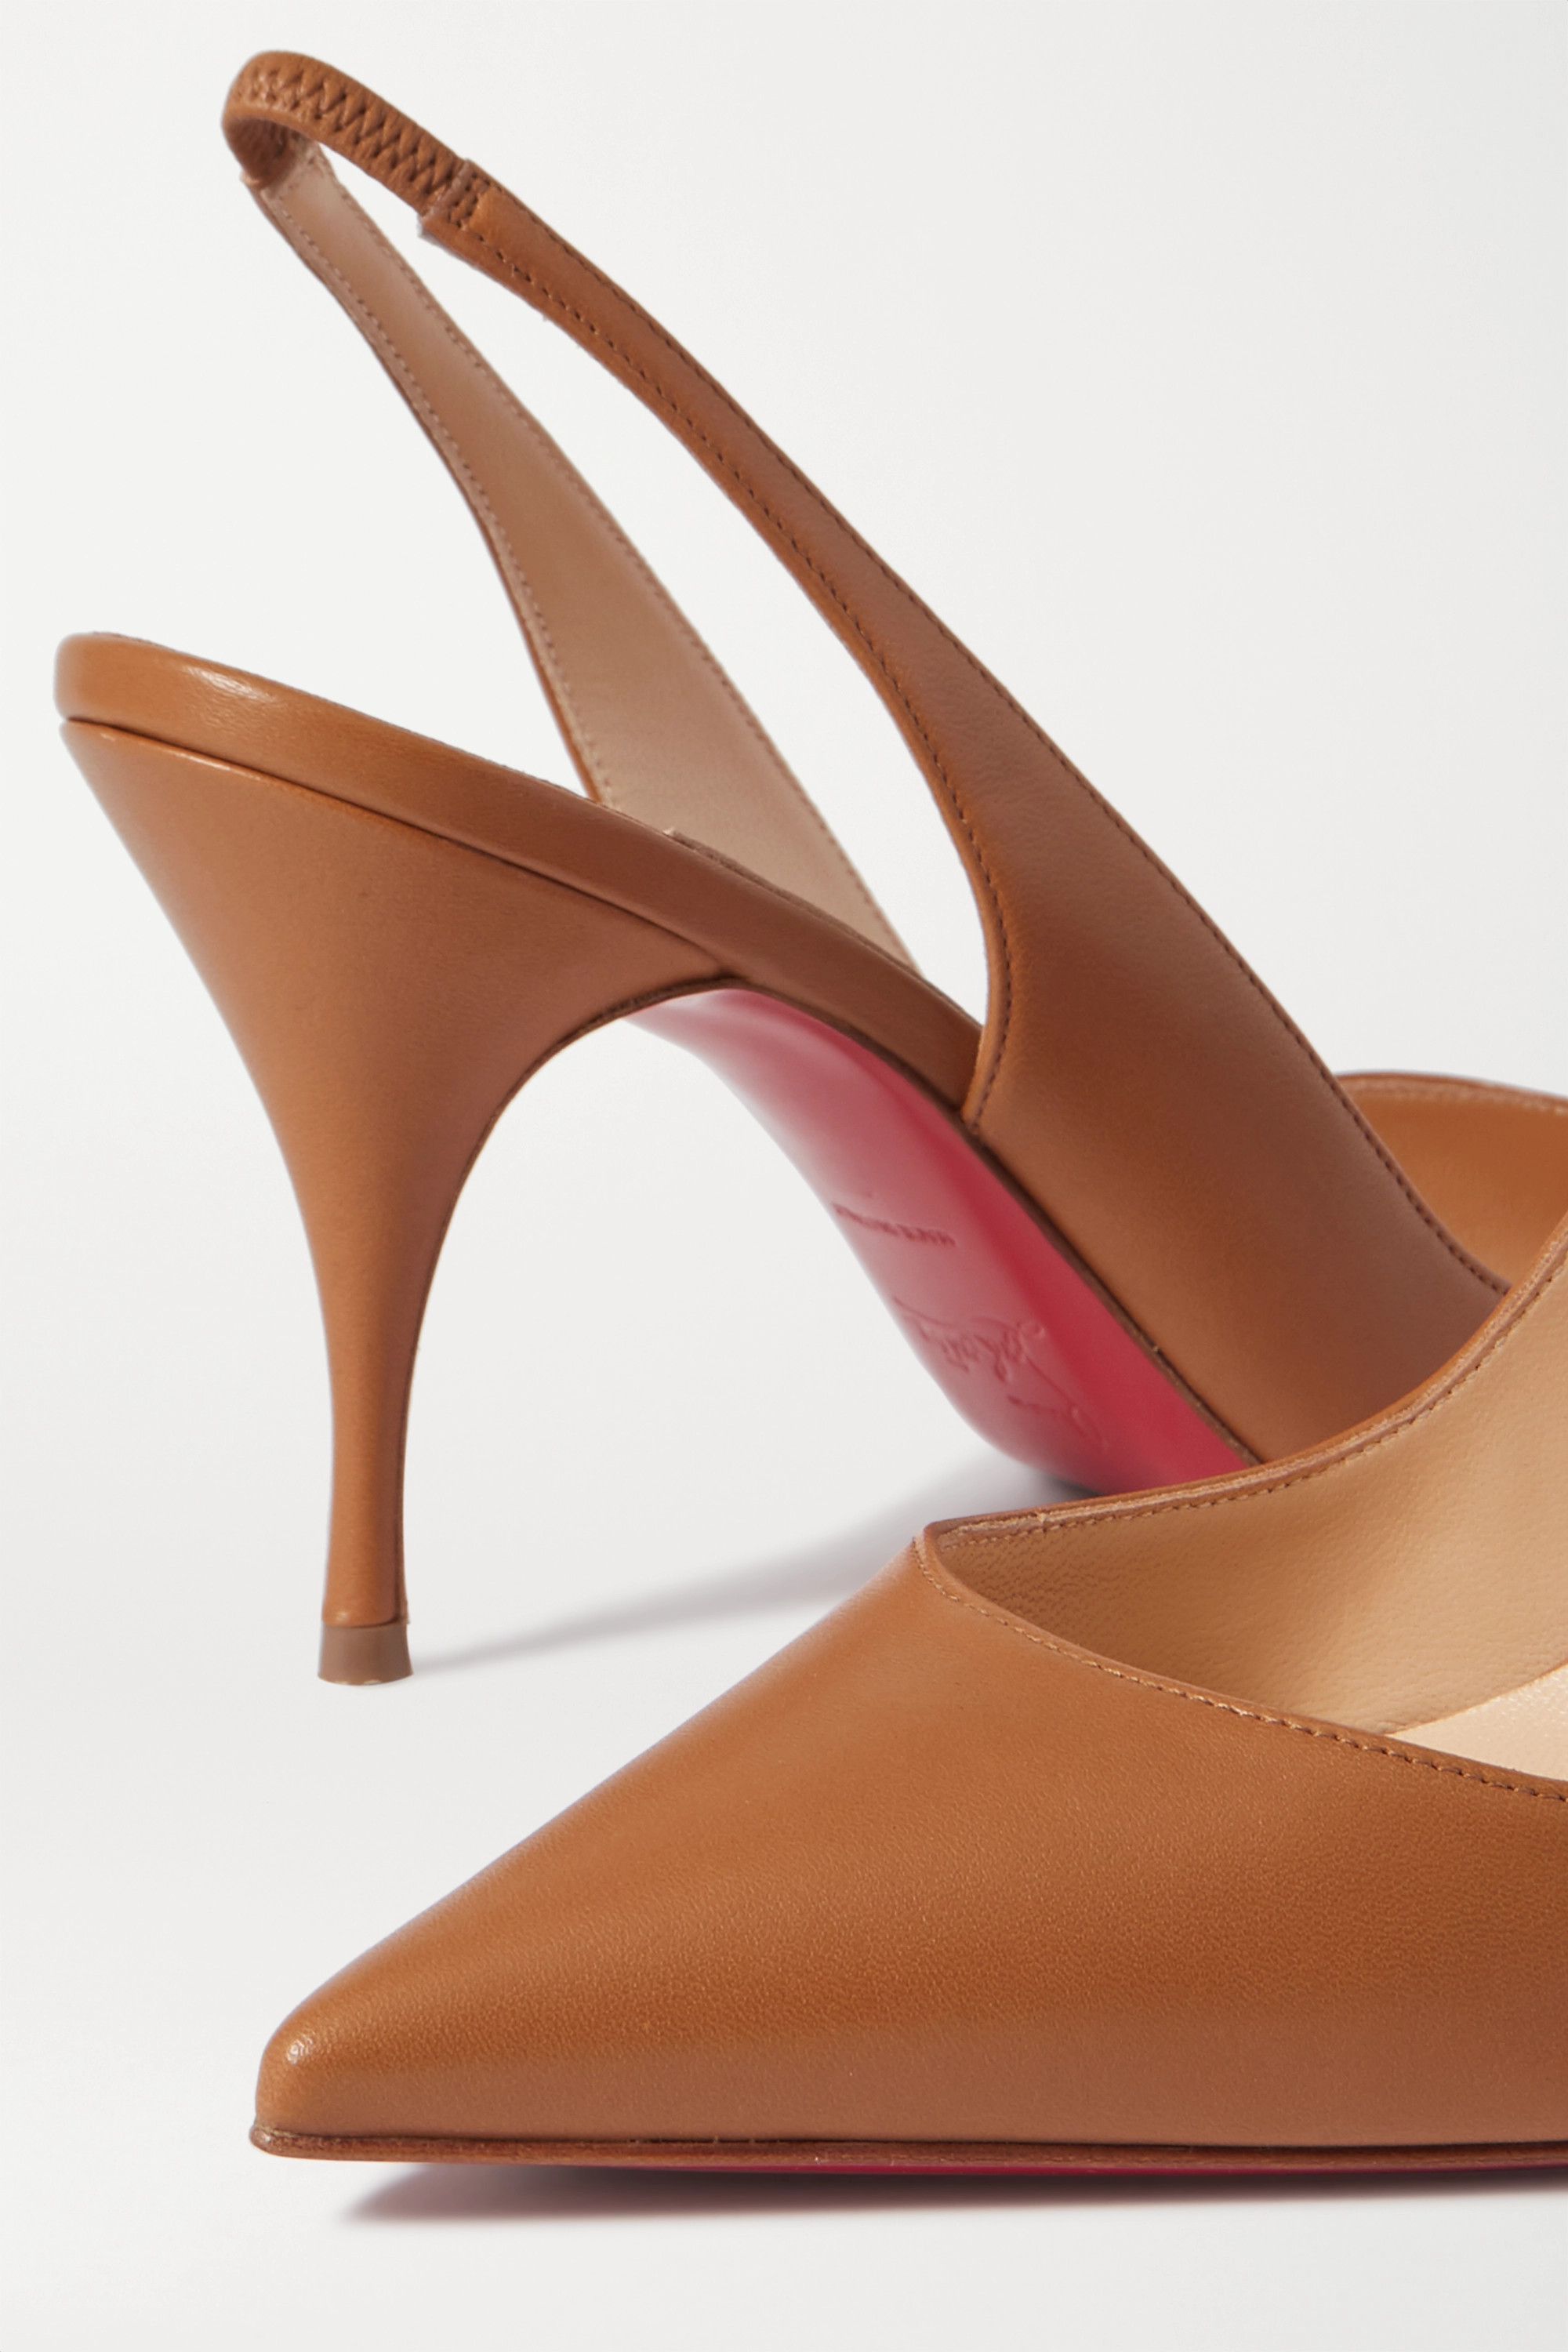 Christian Louboutin Clare 80 leather slingback pumps